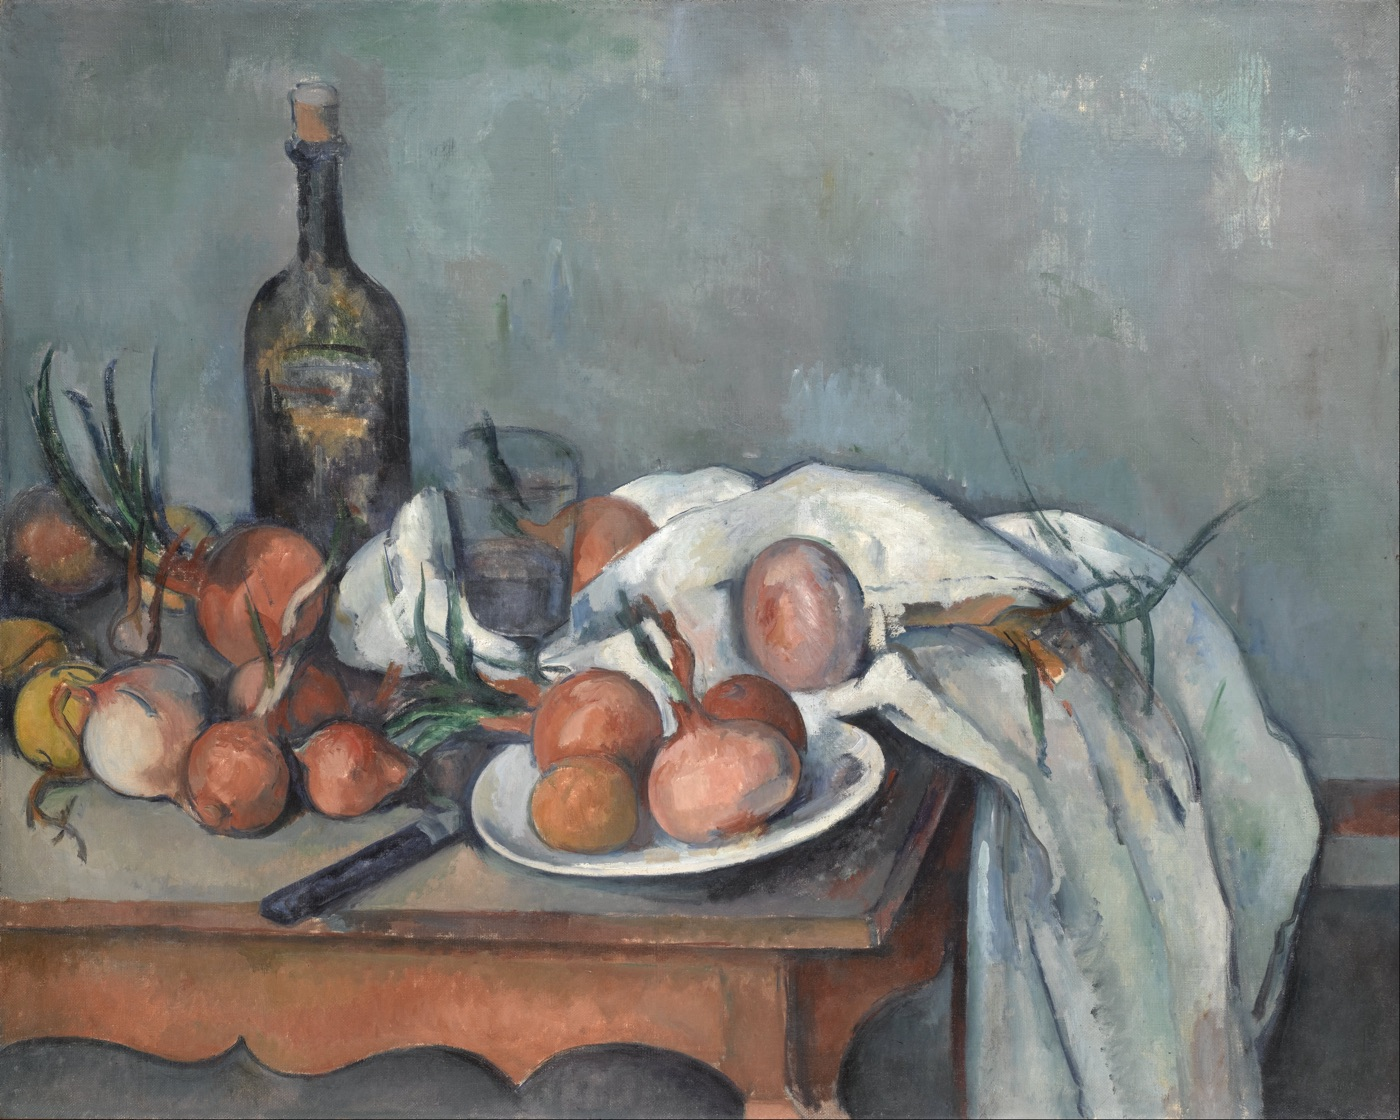 Paul_Cézanne_-_Still_Life_with_Onions_-_Google_Art_Project